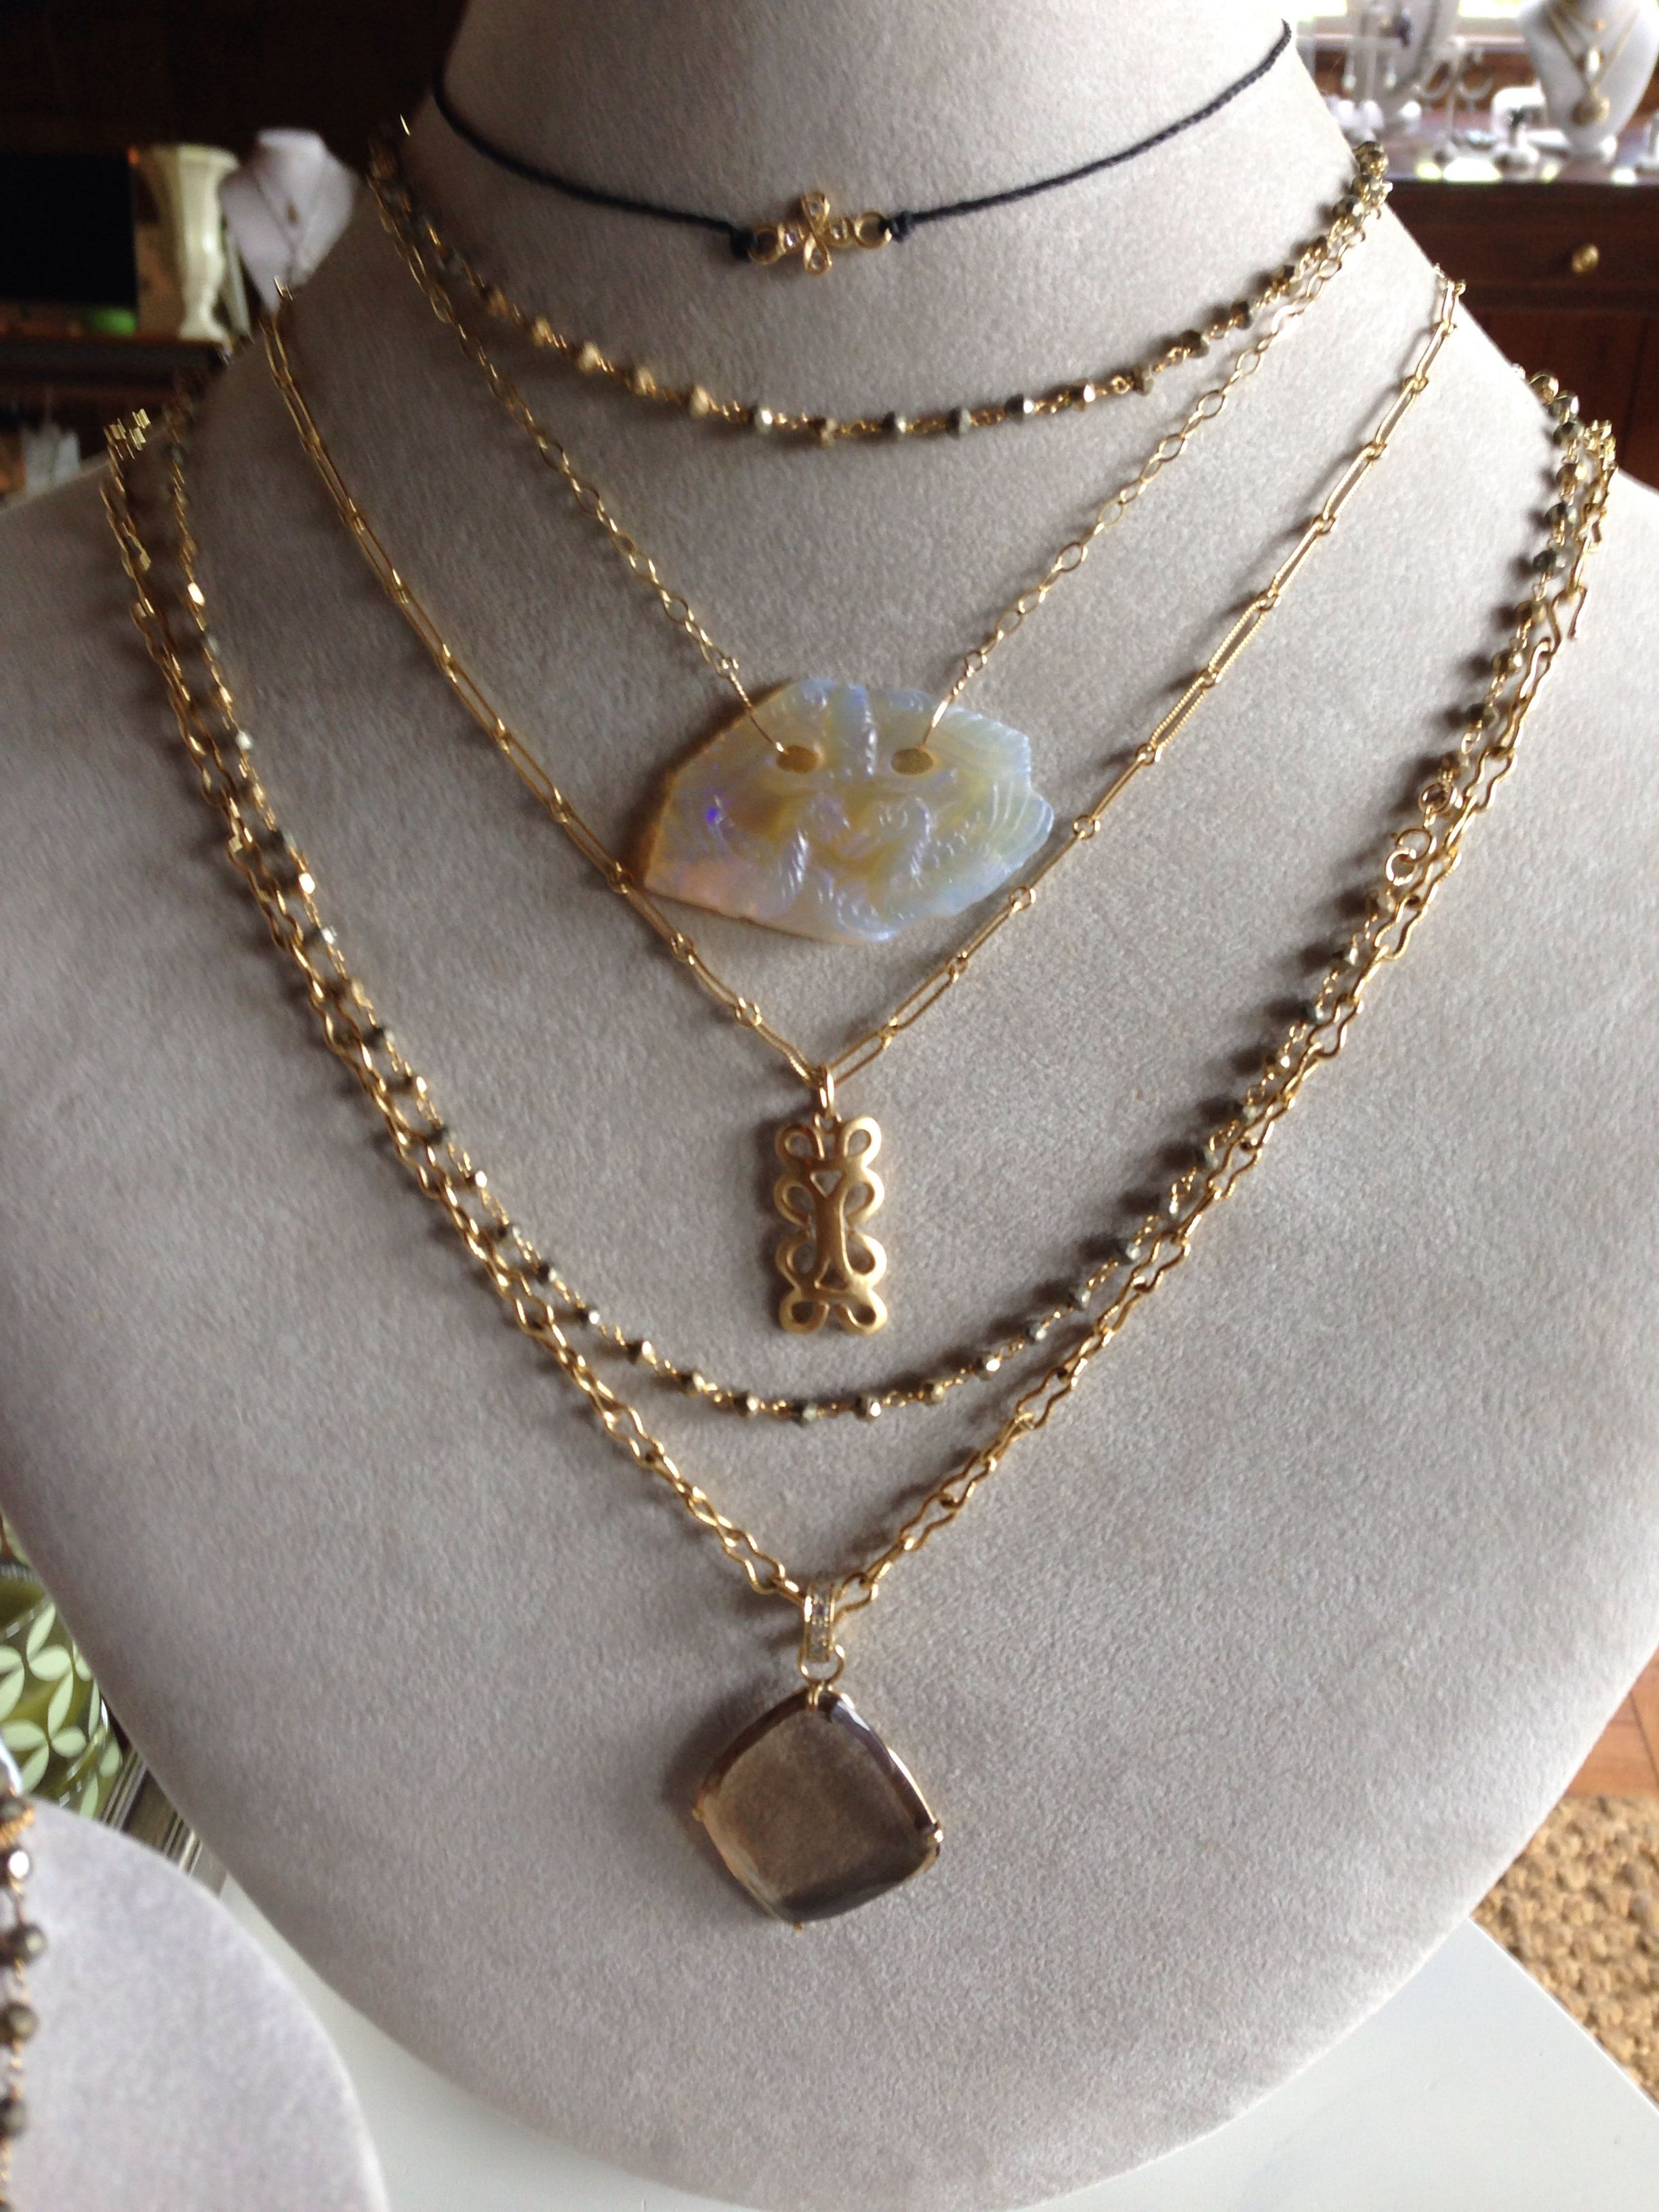 Multi layered -- necklaces -- a few of our fav's  #necklaces #oneofakind #handmade #gold #swdjewelry